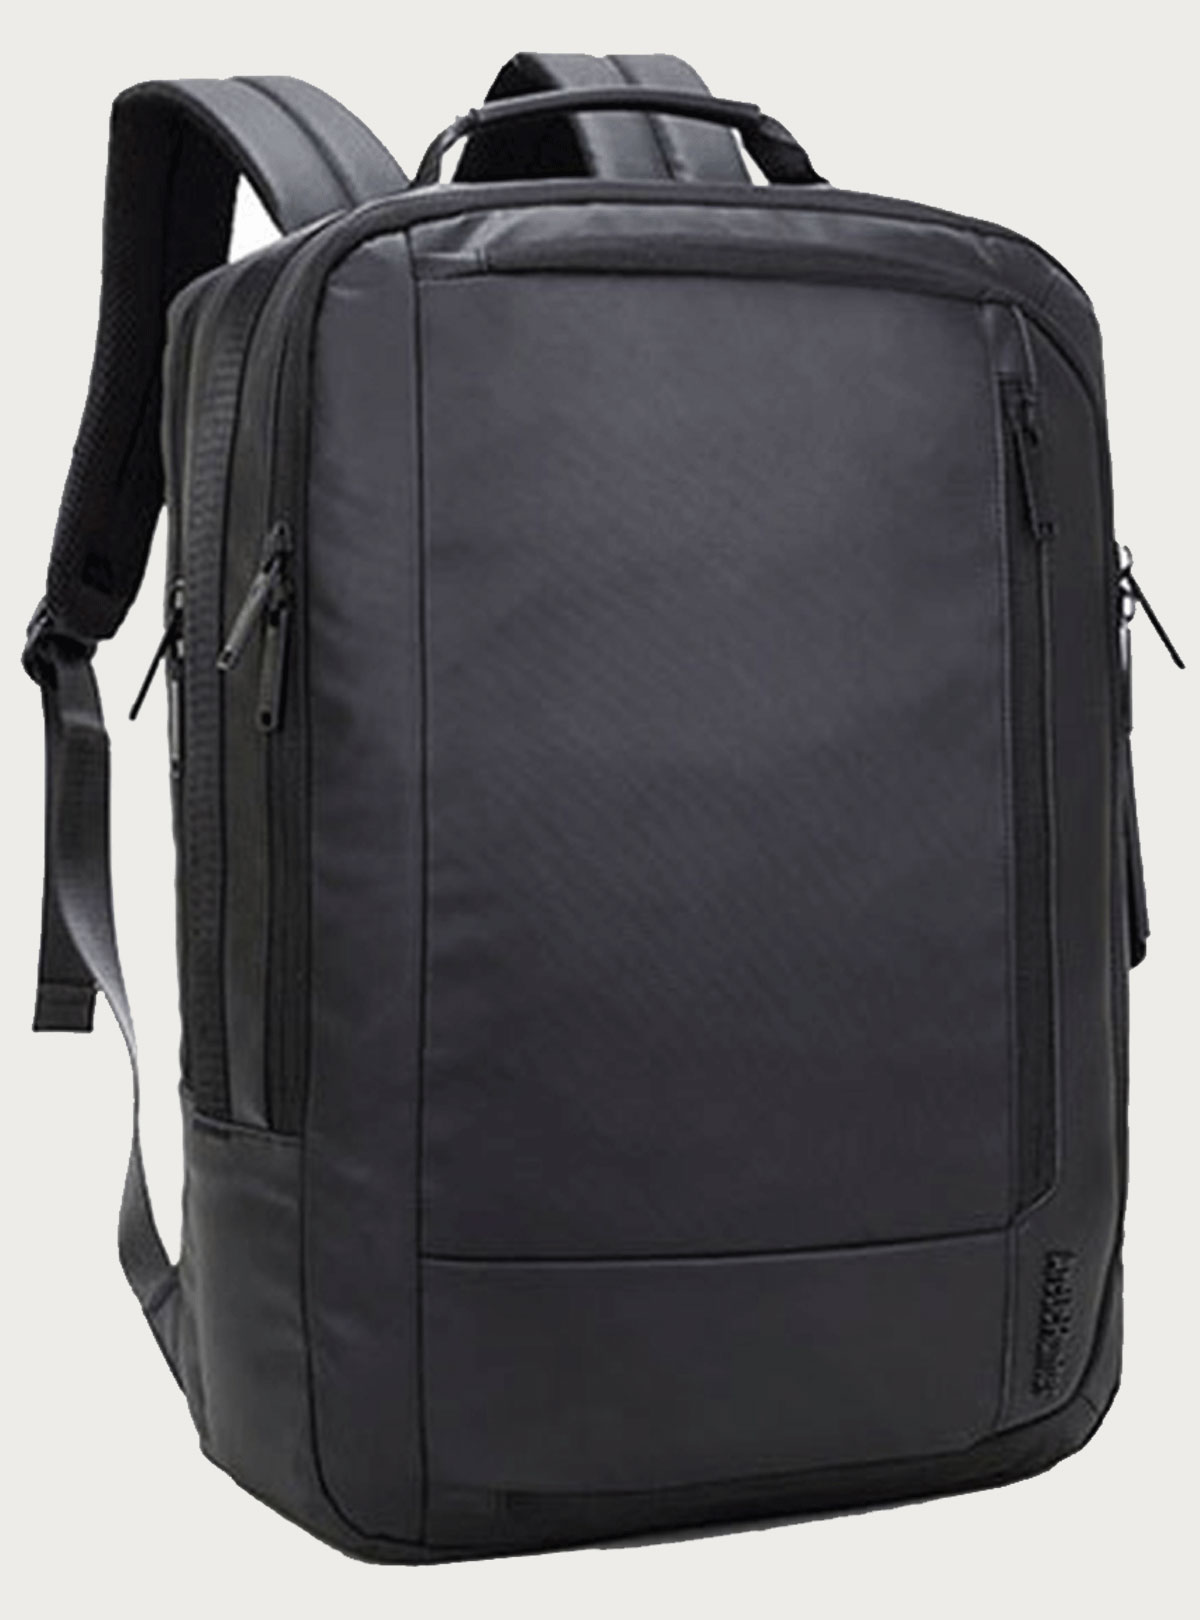 2 Way Bag Mens Backpack for Laptop Bag for college ARCTIC HUNTER 362